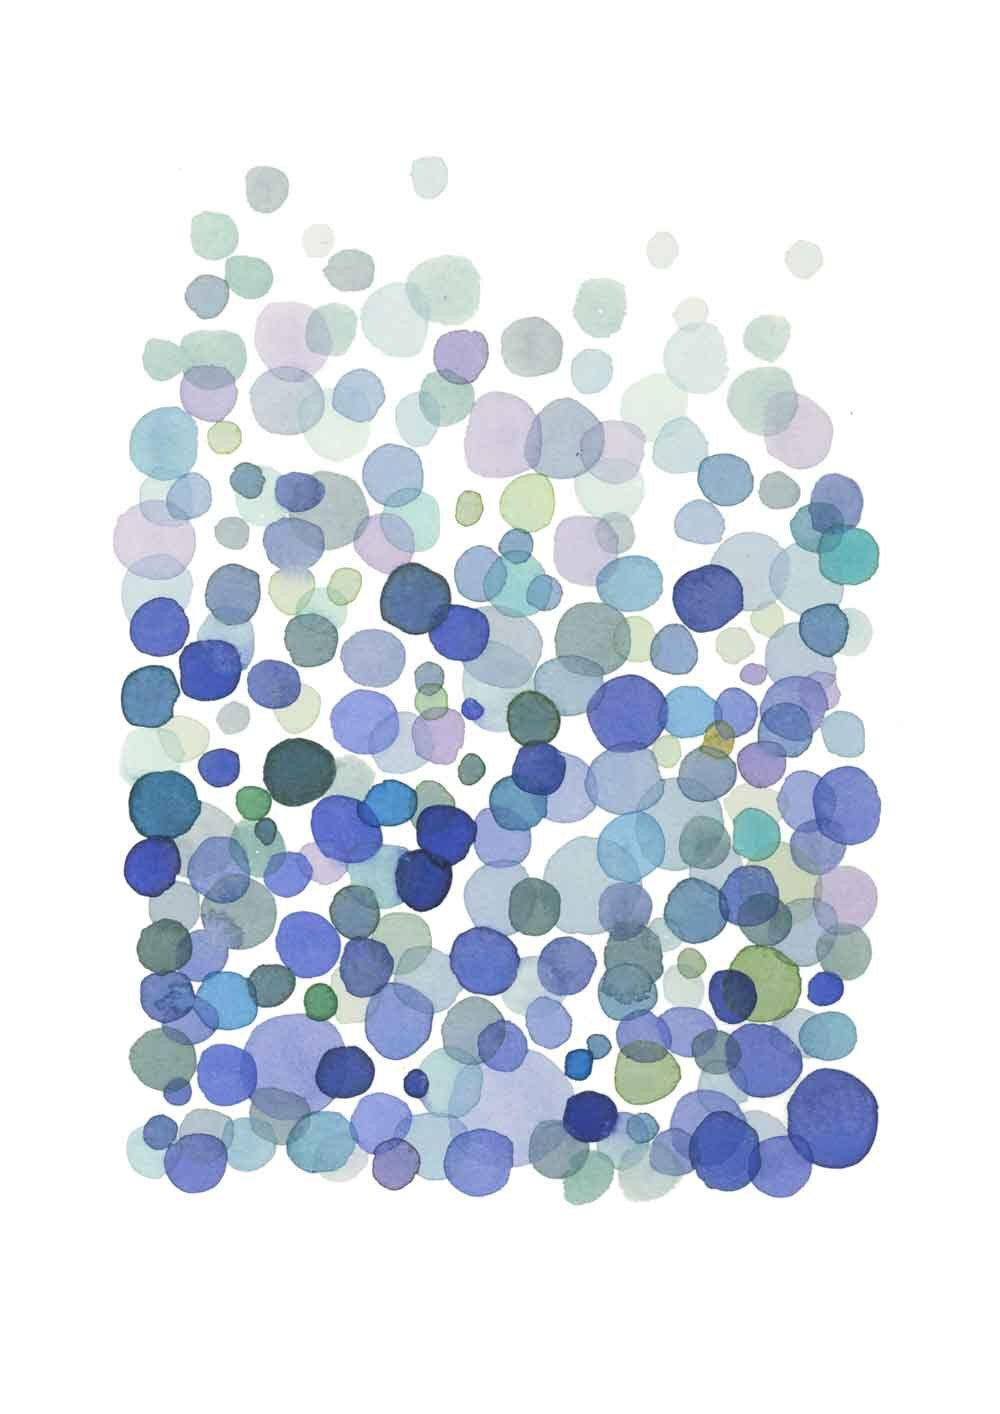 Serenity Watercolor Art print blue dots watercolor painting Pantone 2016 watercolor print abstract painting by LouiseArtStudio on Etsy https://www.etsy.com/listing/153434764/serenity-watercolor-art-print-blue-dots